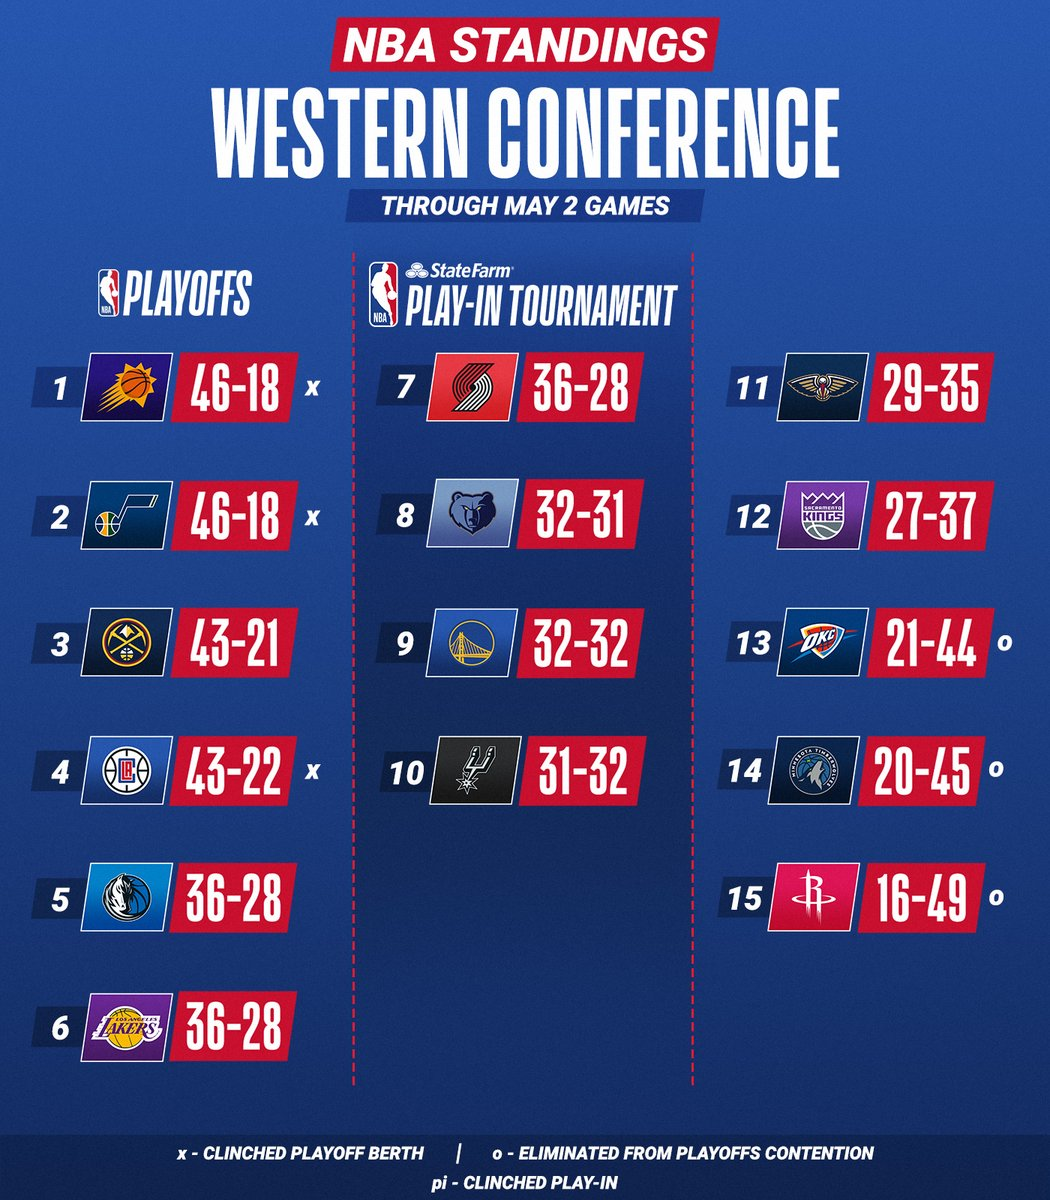 The @sixers and @Suns retake #1 in each conference!  Teams ranked 7-10 will participate in the #StateFarmPlayIn Tournament after the regular season (May 18-21) to secure the final two spots in the #NBAPlayoffs for each conference. https://t.co/mFnRjiGmmK